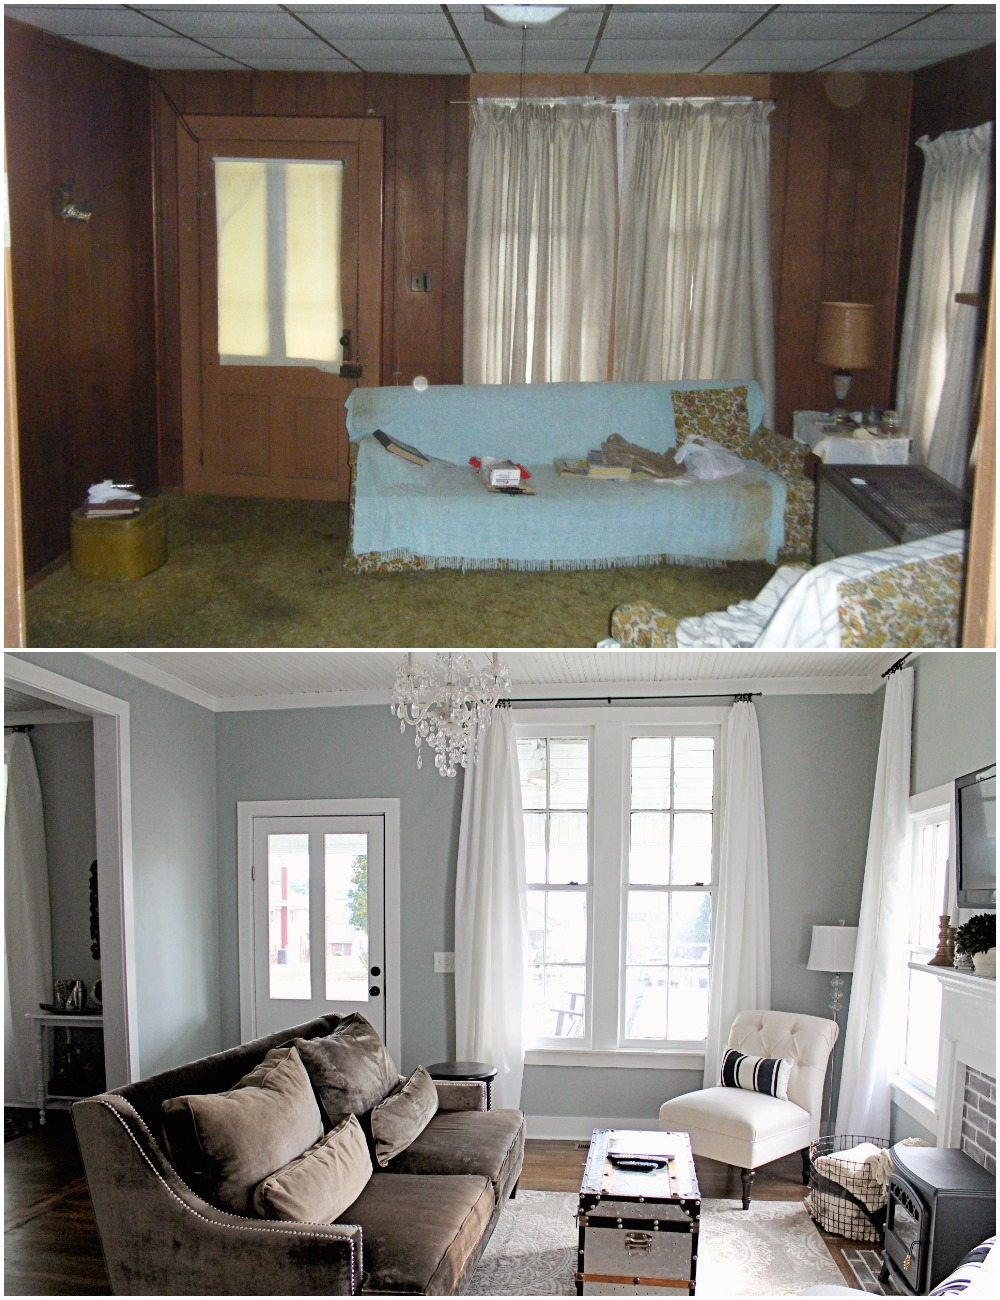 Elizabeth Burns Design  Budget-Friendly Fixer Upper Farmhouse Before and After House Flip - DIY Living Room with Faux Fireplace and French Doors - Sherwin Williams Magnetic Gray (6).jpg